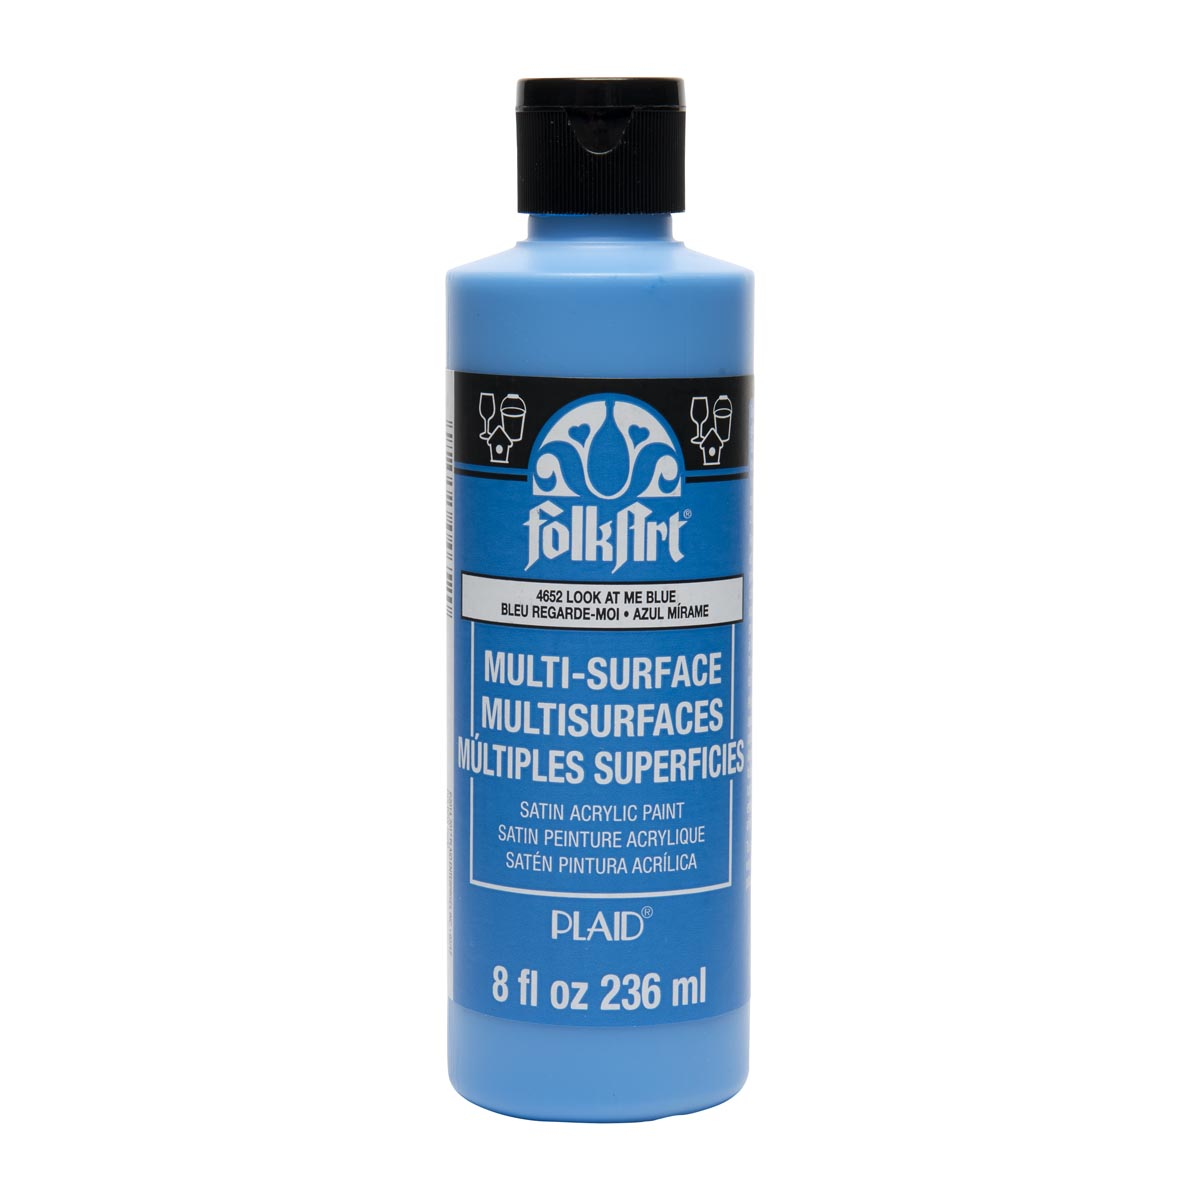 FolkArt ® Multi-Surface Satin Acrylic Paints - Look At Me Blue, 8 oz. - 4652